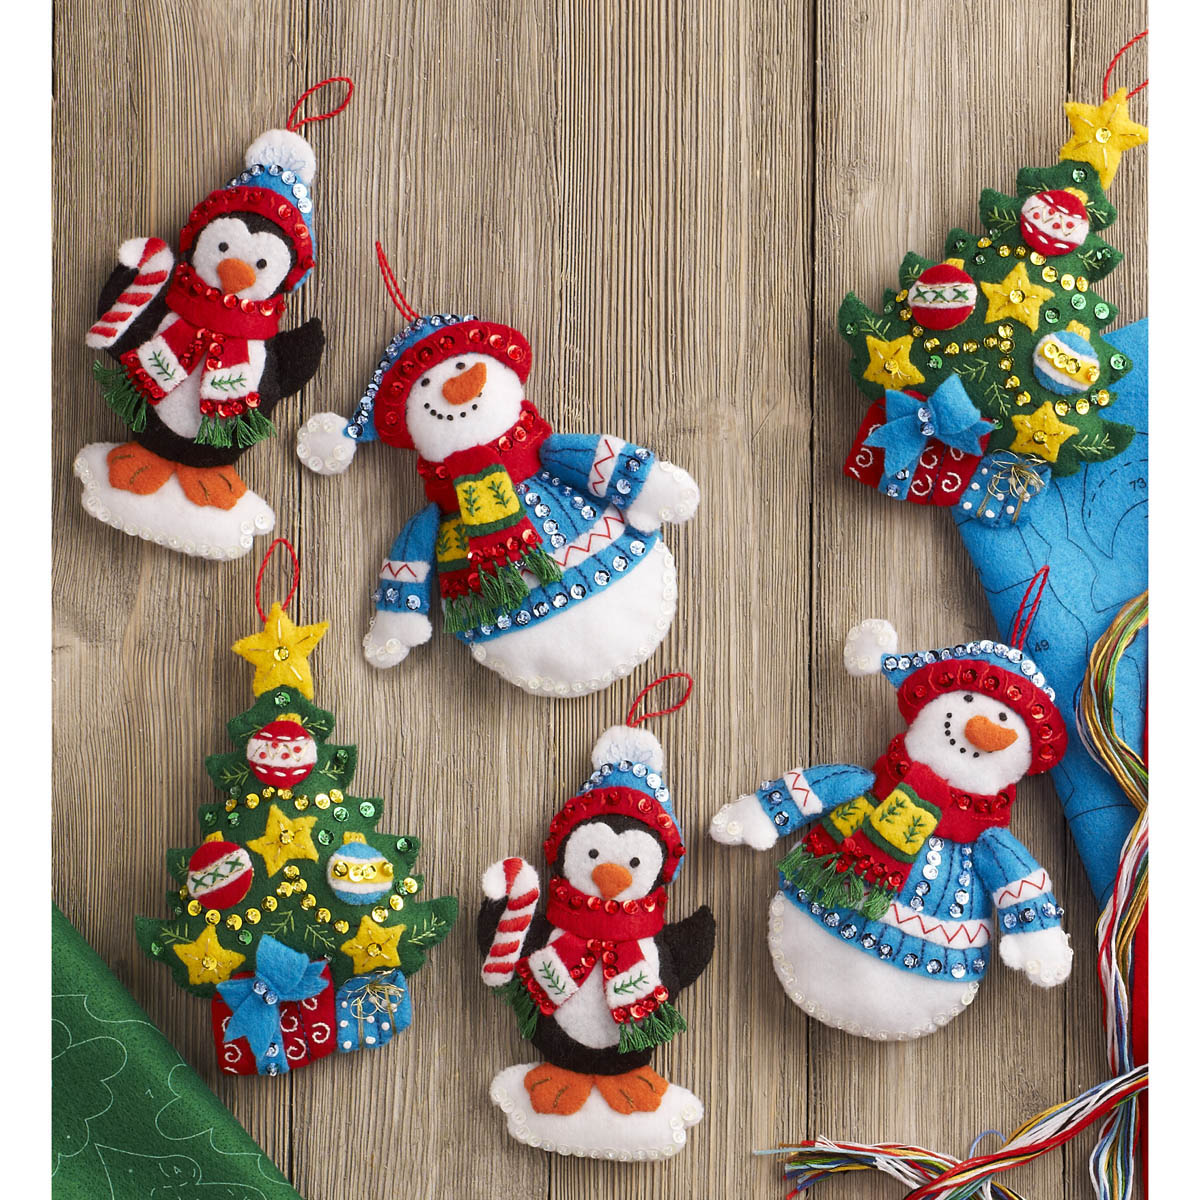 Bucilla ® Seasonal - Felt - Ornament Kits - Trimming The Tree